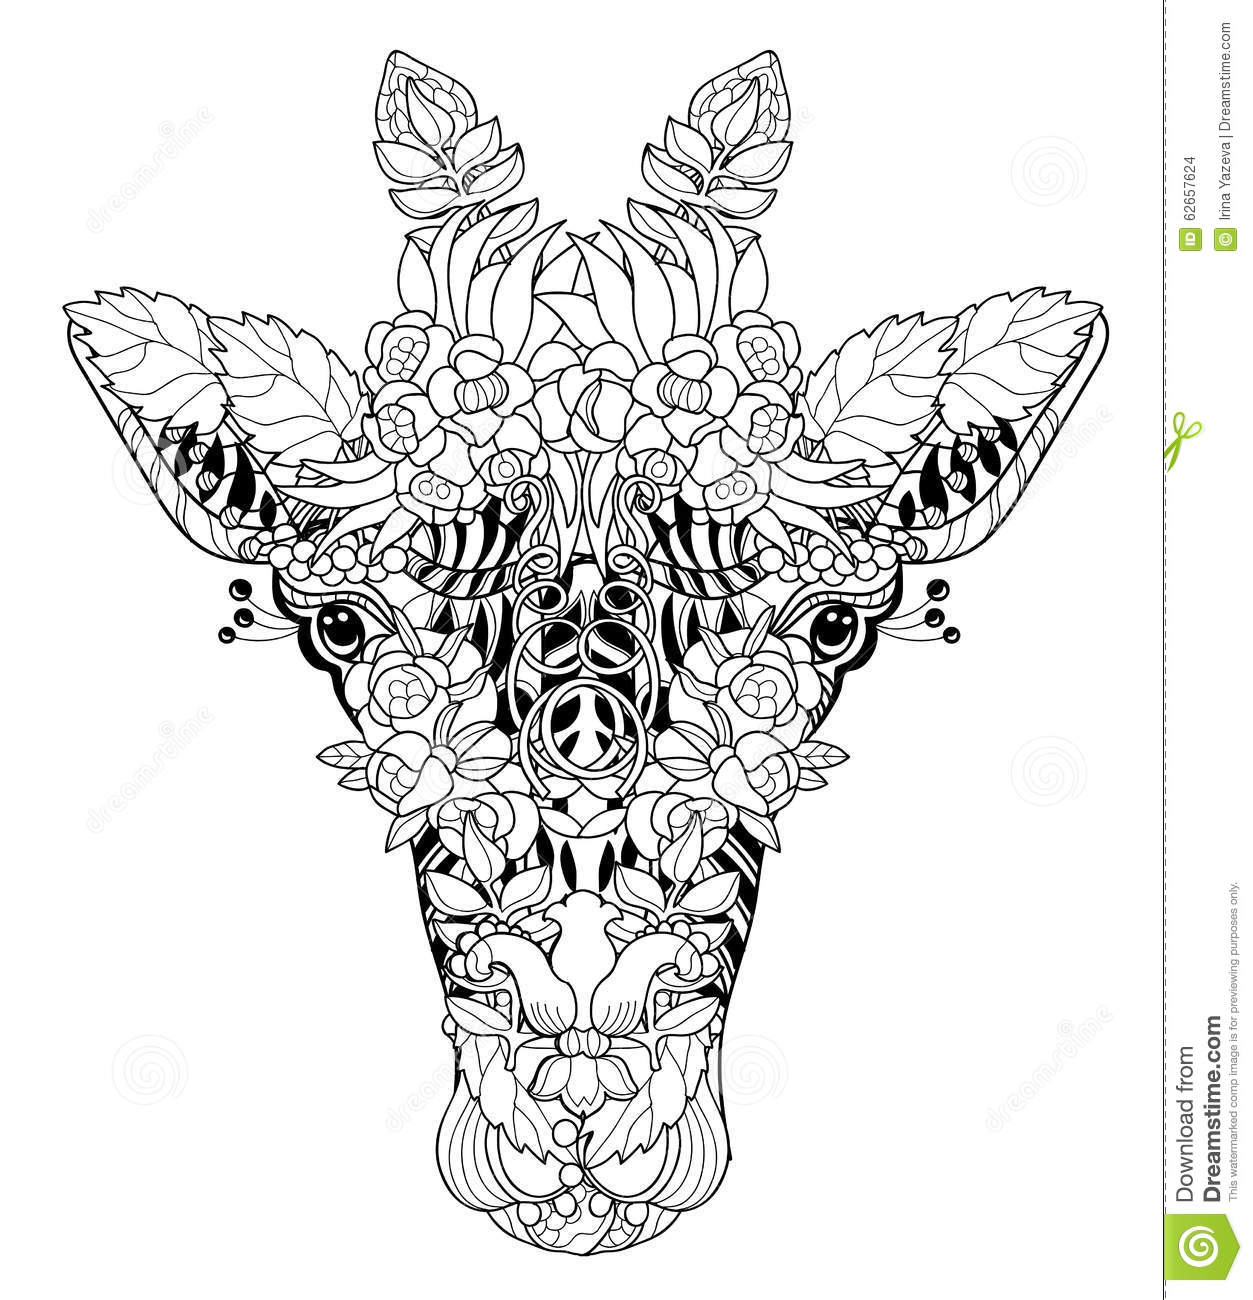 Giraffe head doodle on white background stock vector for Giraffe mandala coloring pages